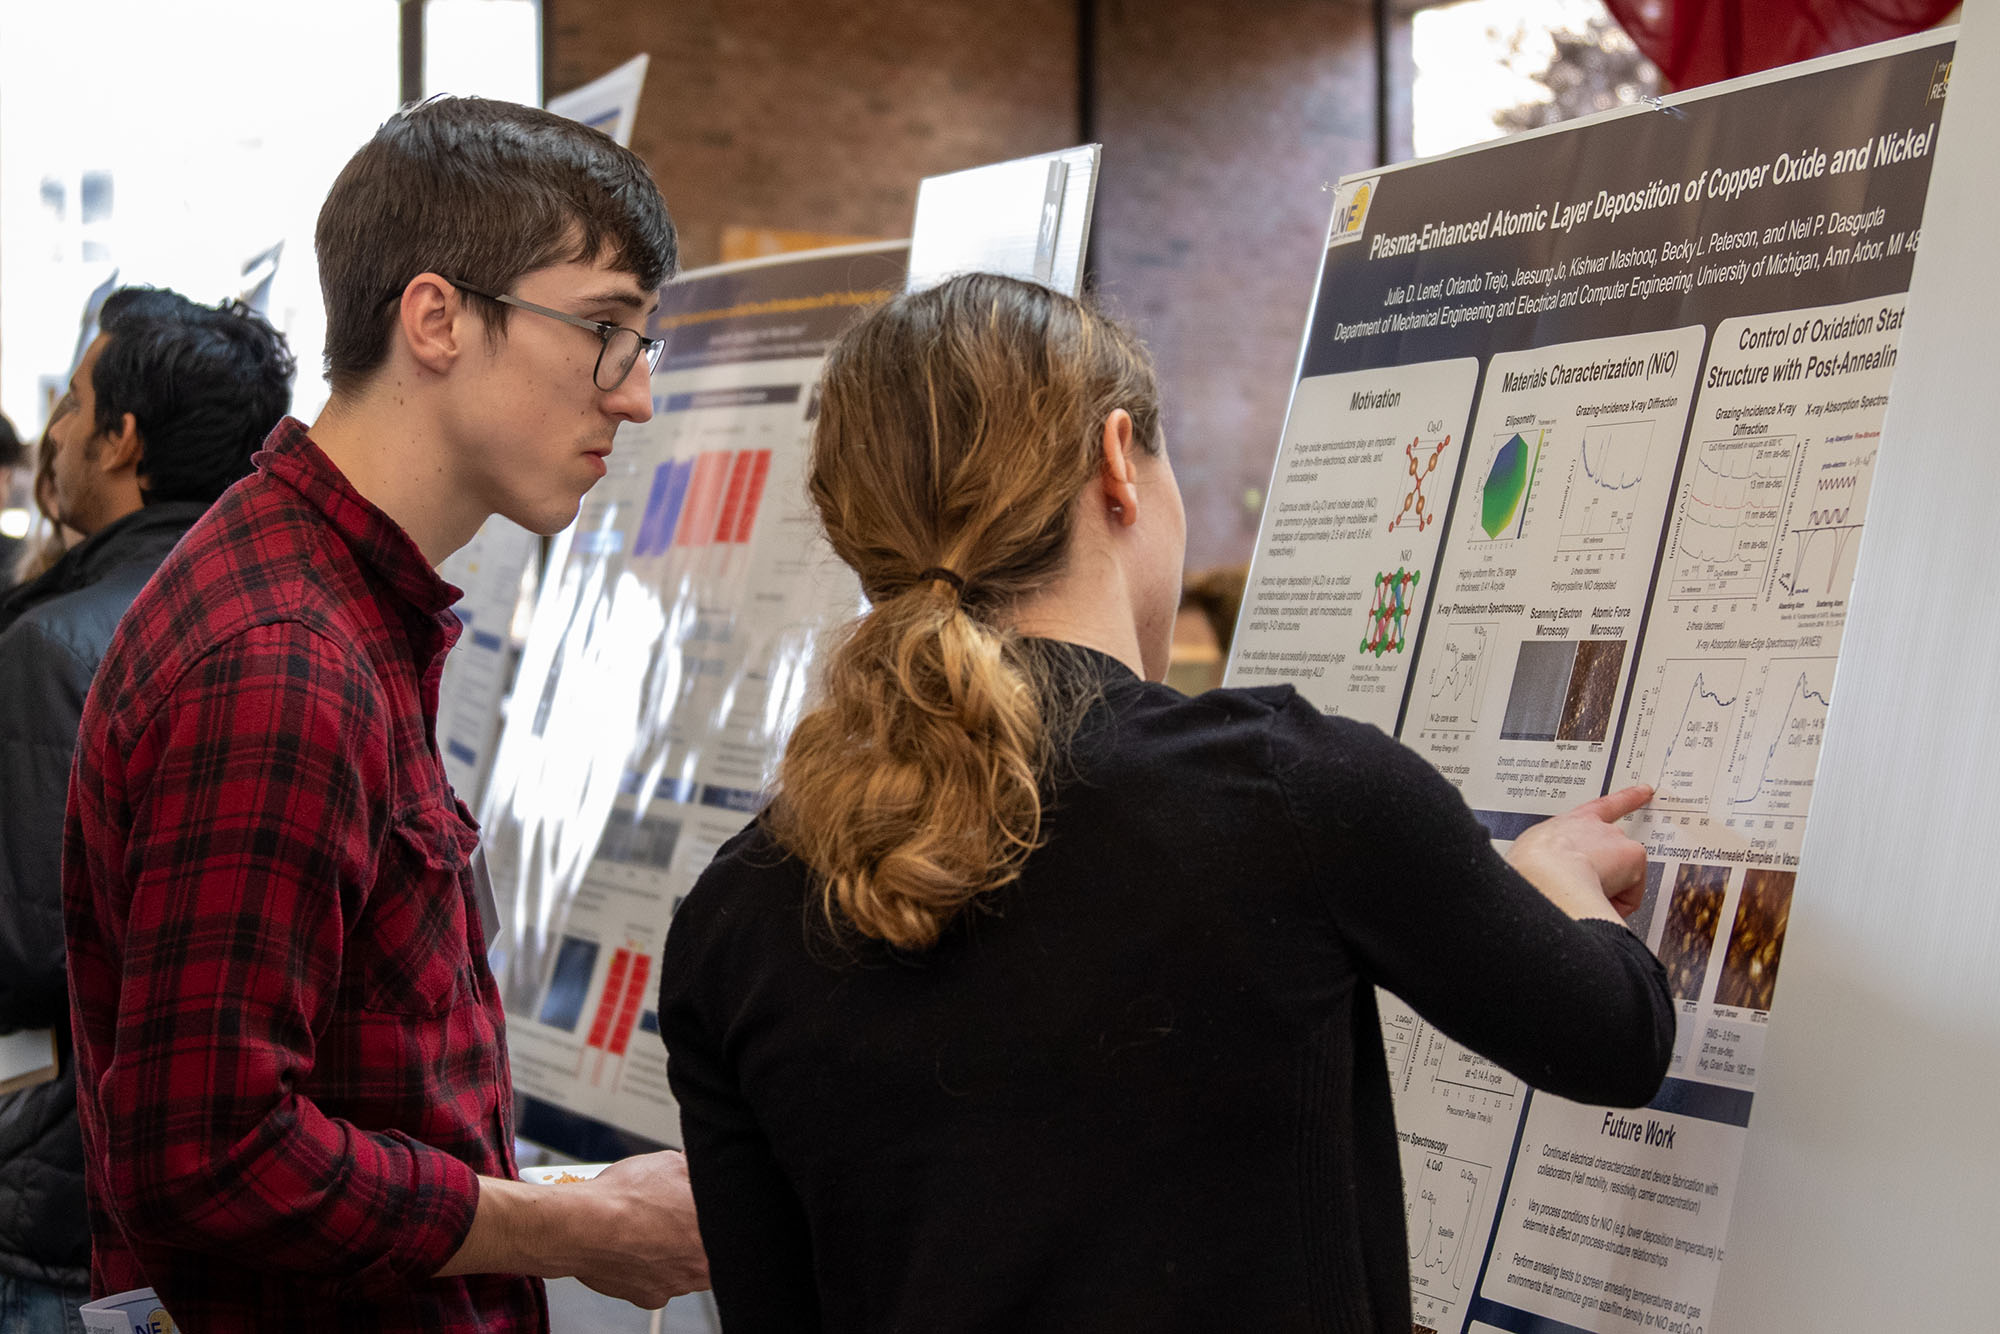 Two students examine a poster during the symposium